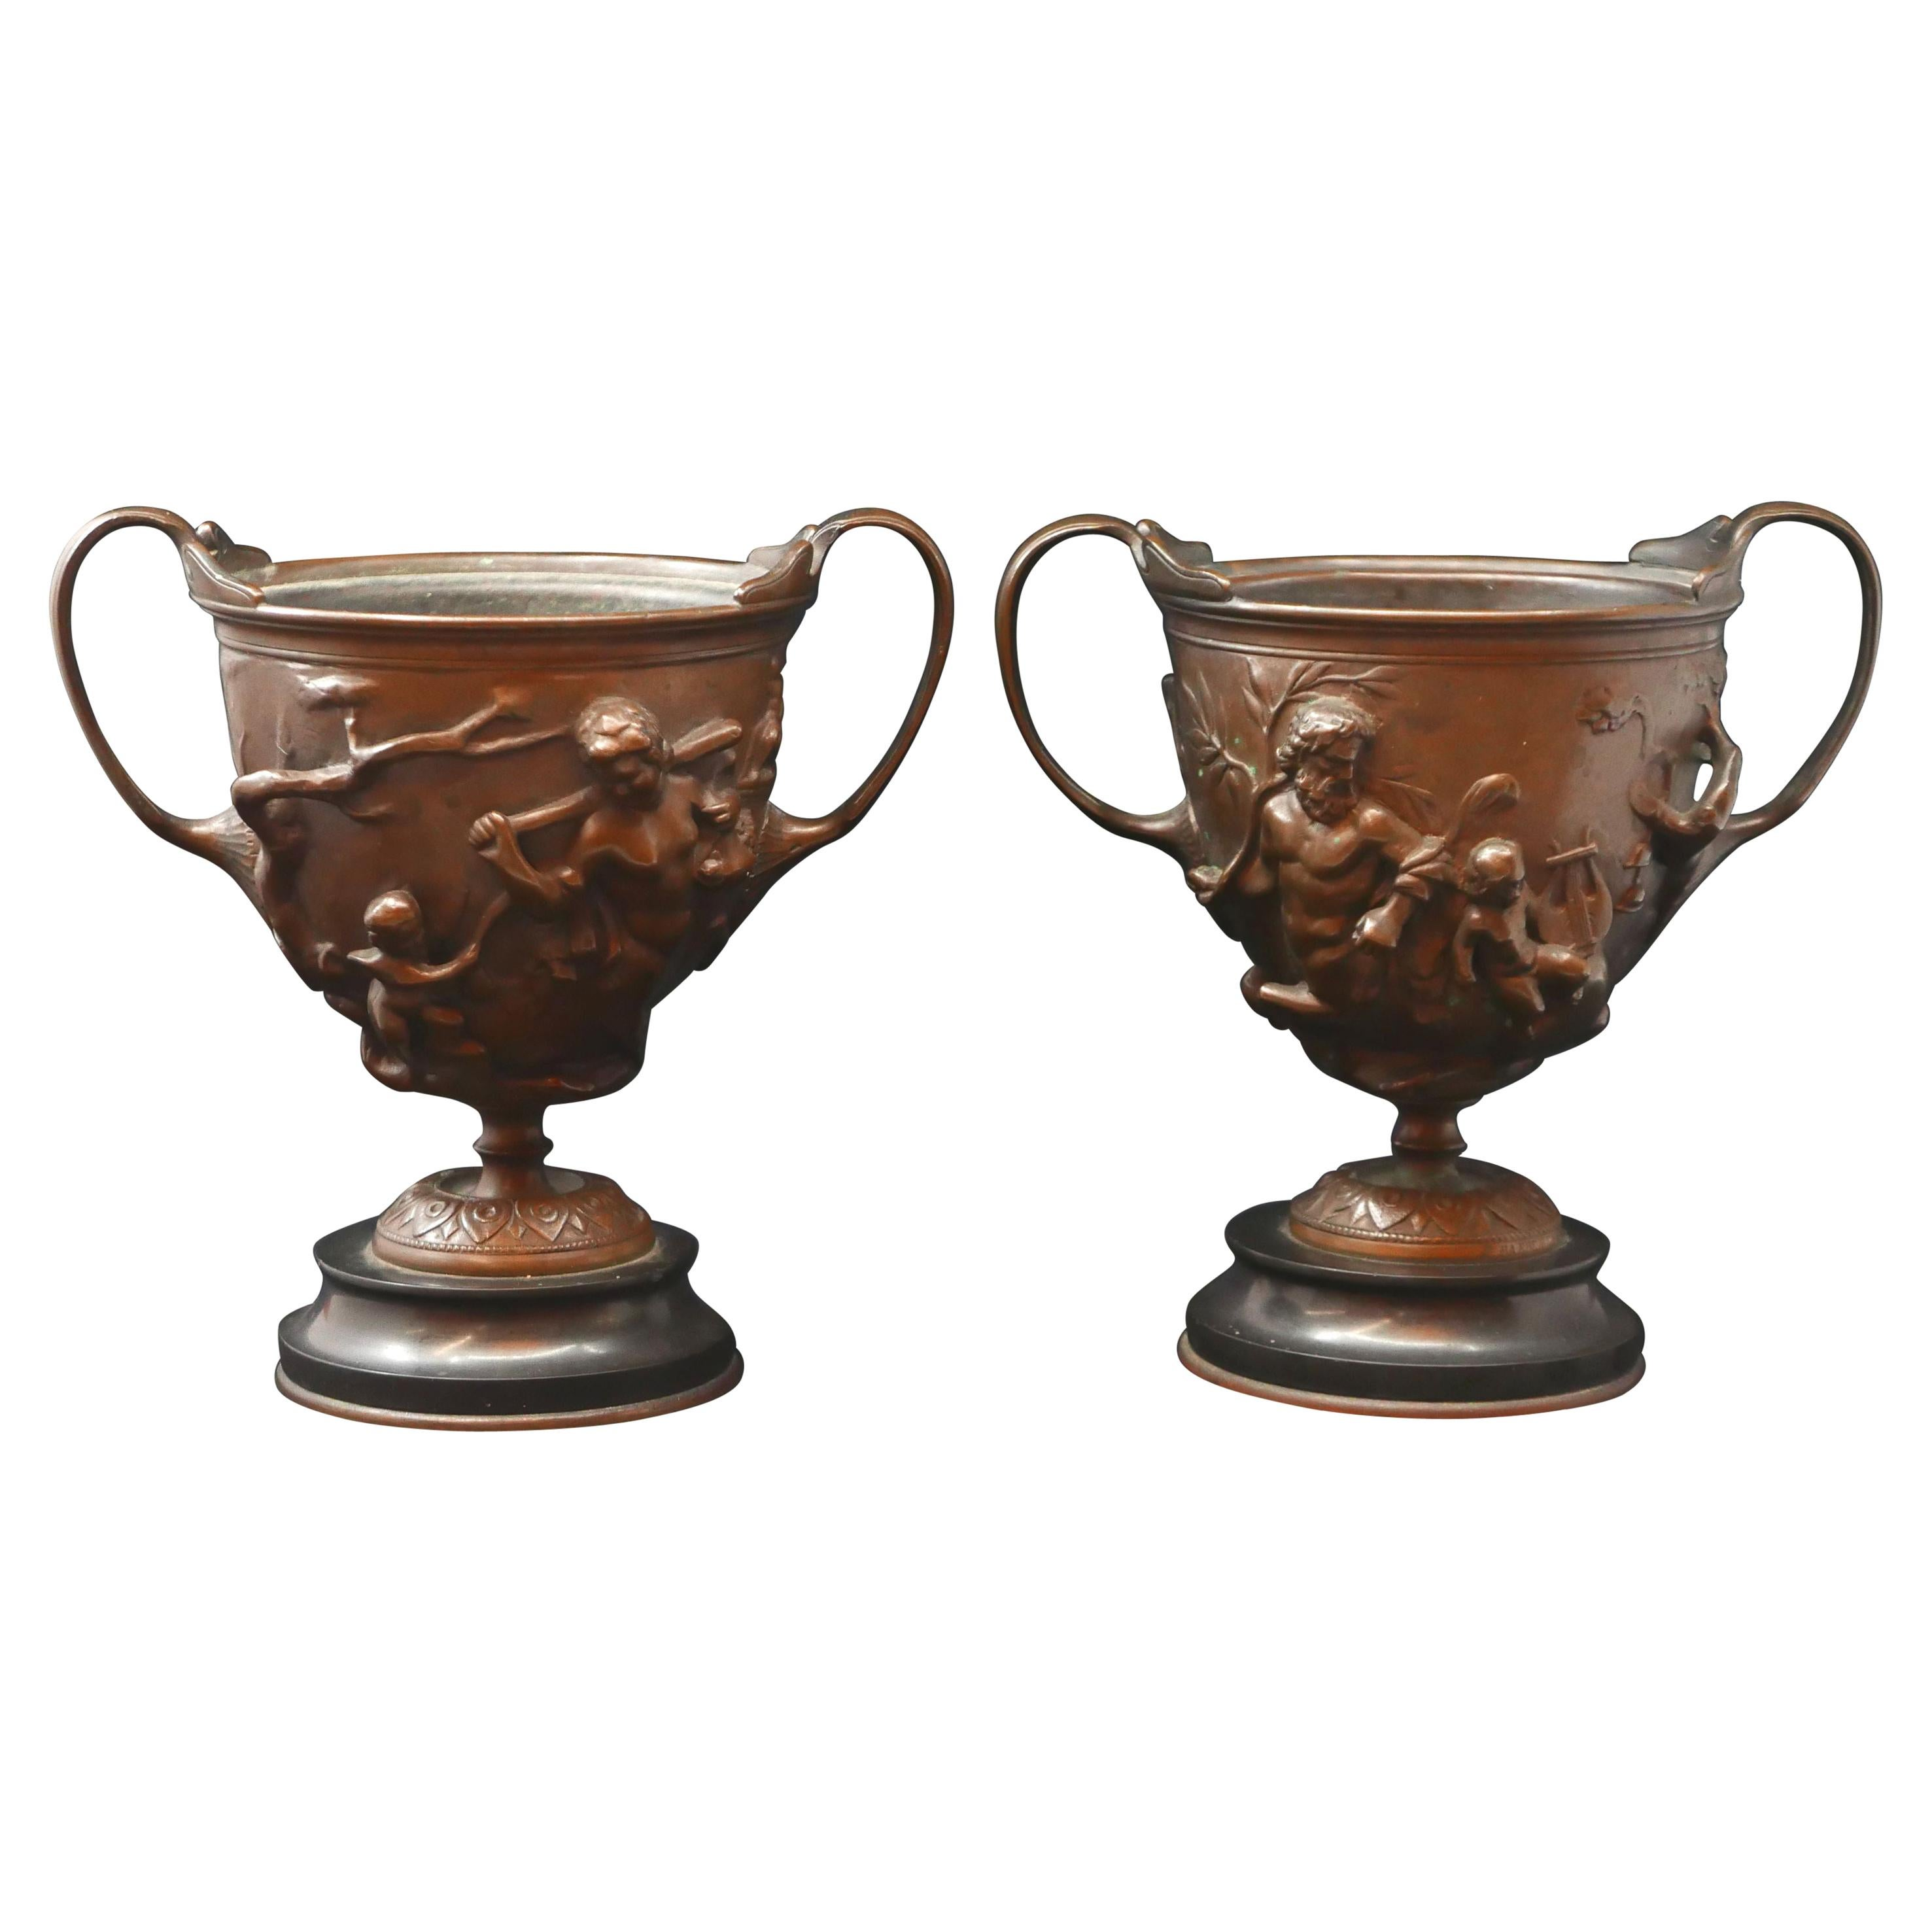 Pair of Bronze Urns Cast by Barbedienne and Attributed to Ferdiand Levillain